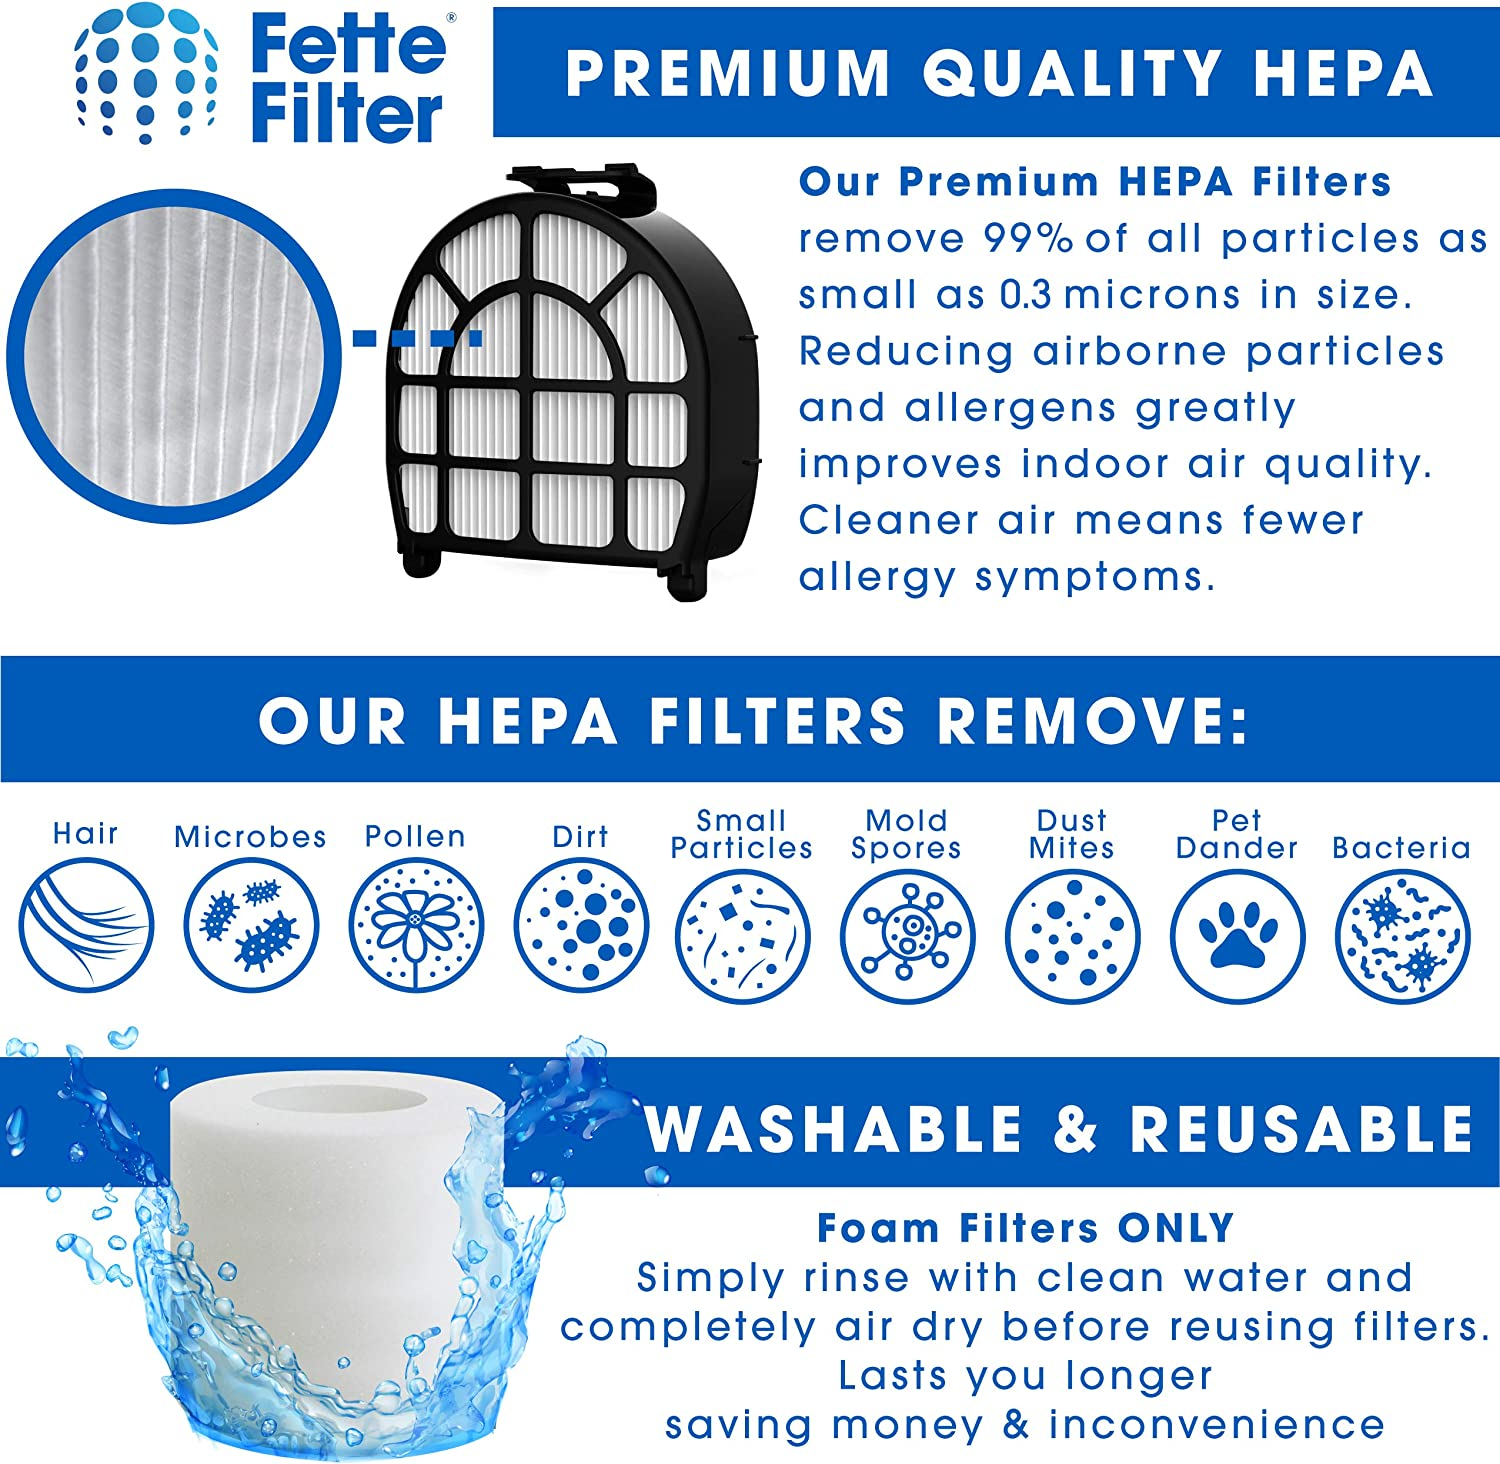 1 HEPA 1 Felt Filter Support Kit 2 Foam Fette Filter Fits LZ600, LZ601, LZ602, LZ602C,QU602QBK, QU602QBL, QU602QBX, QU602QPK, Q Compare to Parts #XHFFC600 /& #XFFLZ600 Vacuum Filter kit Compatible with Shark APEX UpLight Lift-Away DuoClean Vacuums